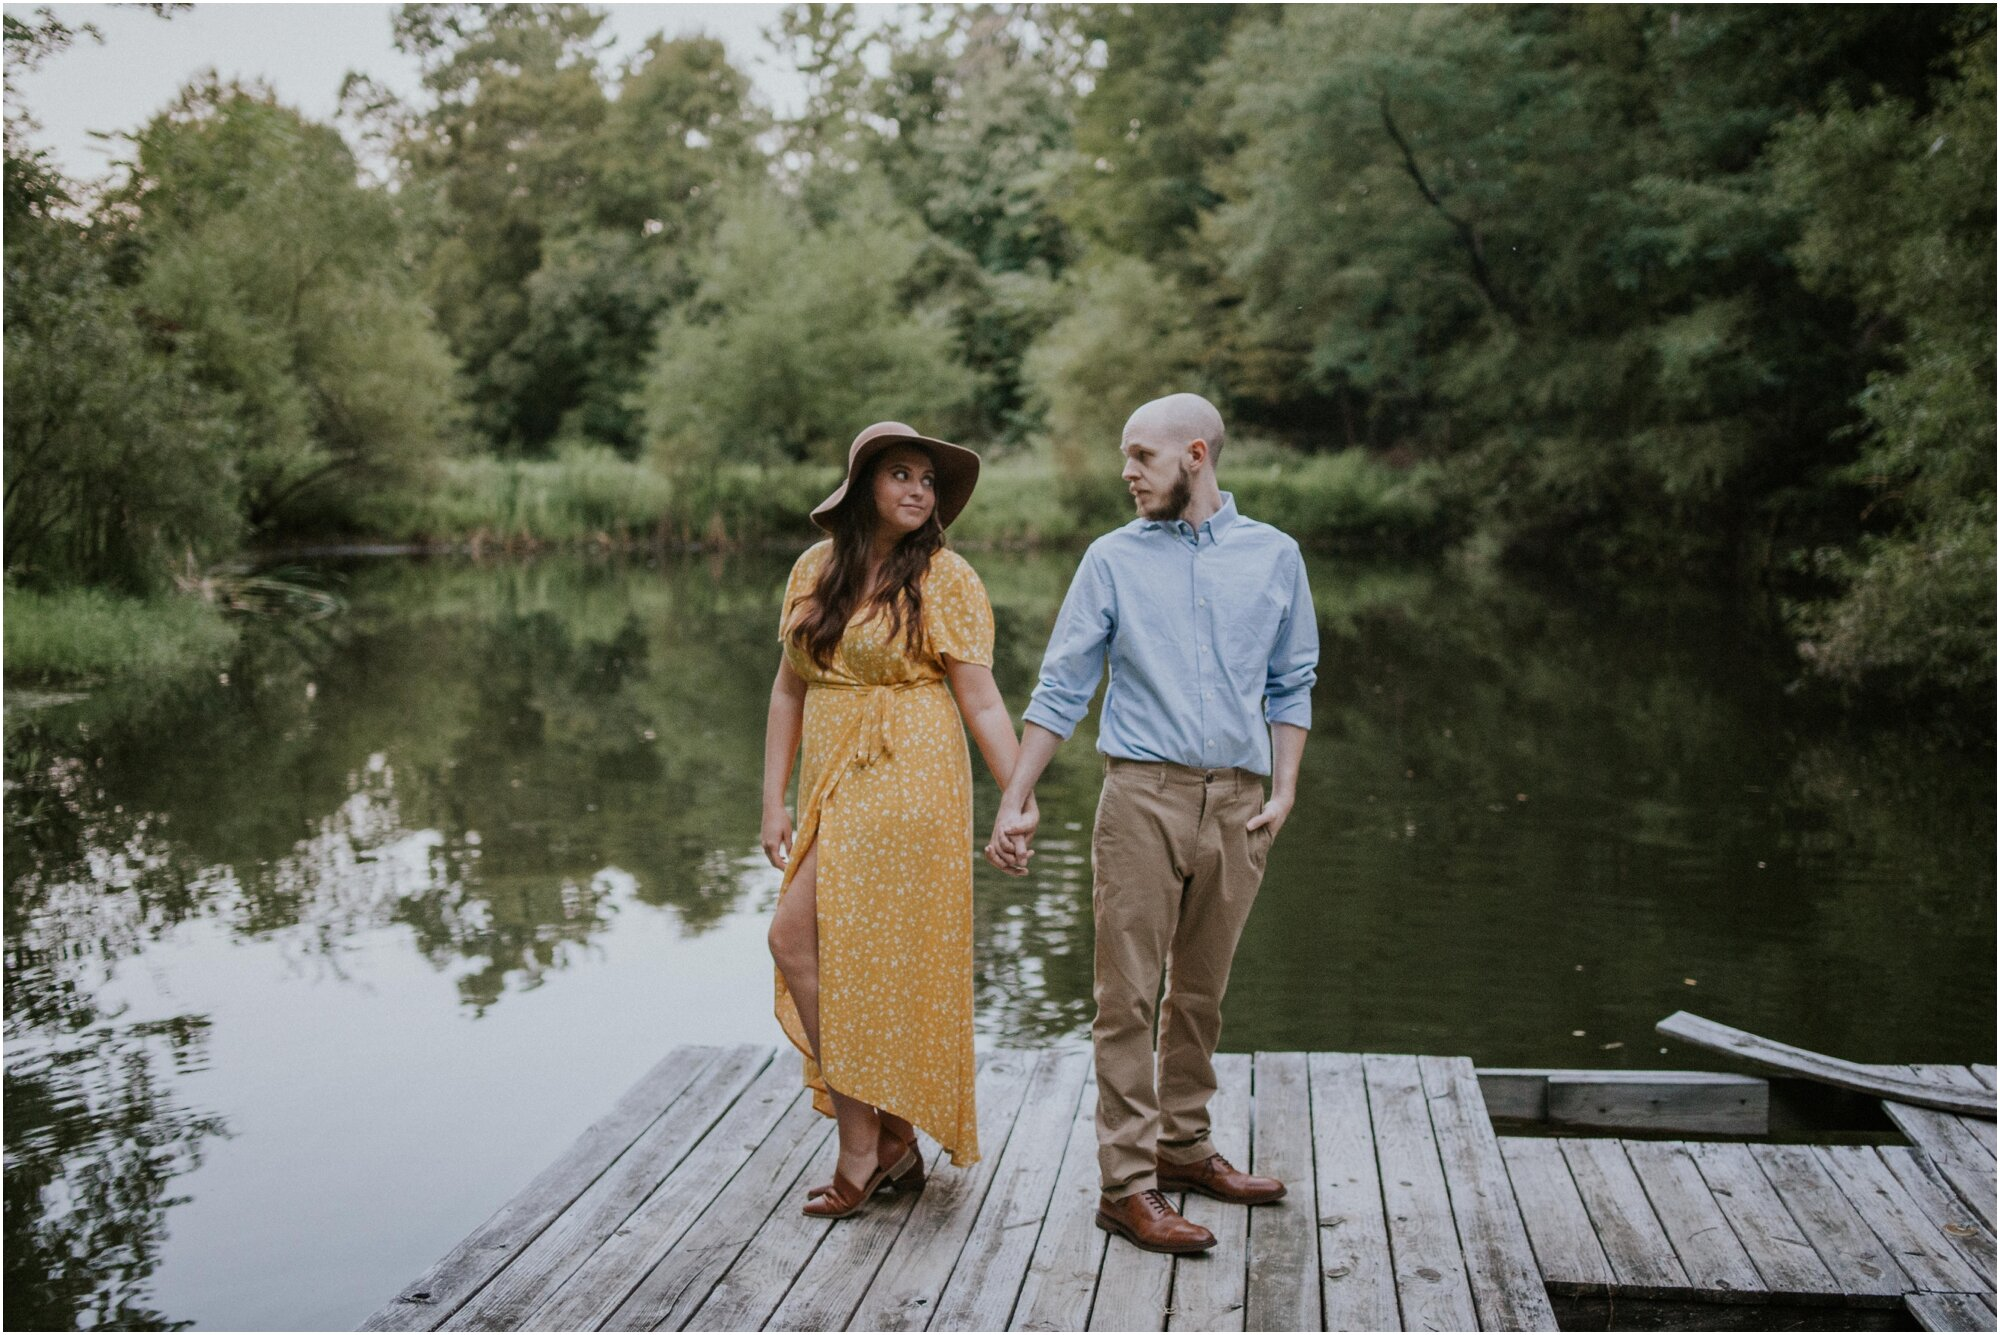 kingsport-tennessee-backyard-pond-bays-mountain-summer-engagement-session_0045.jpg